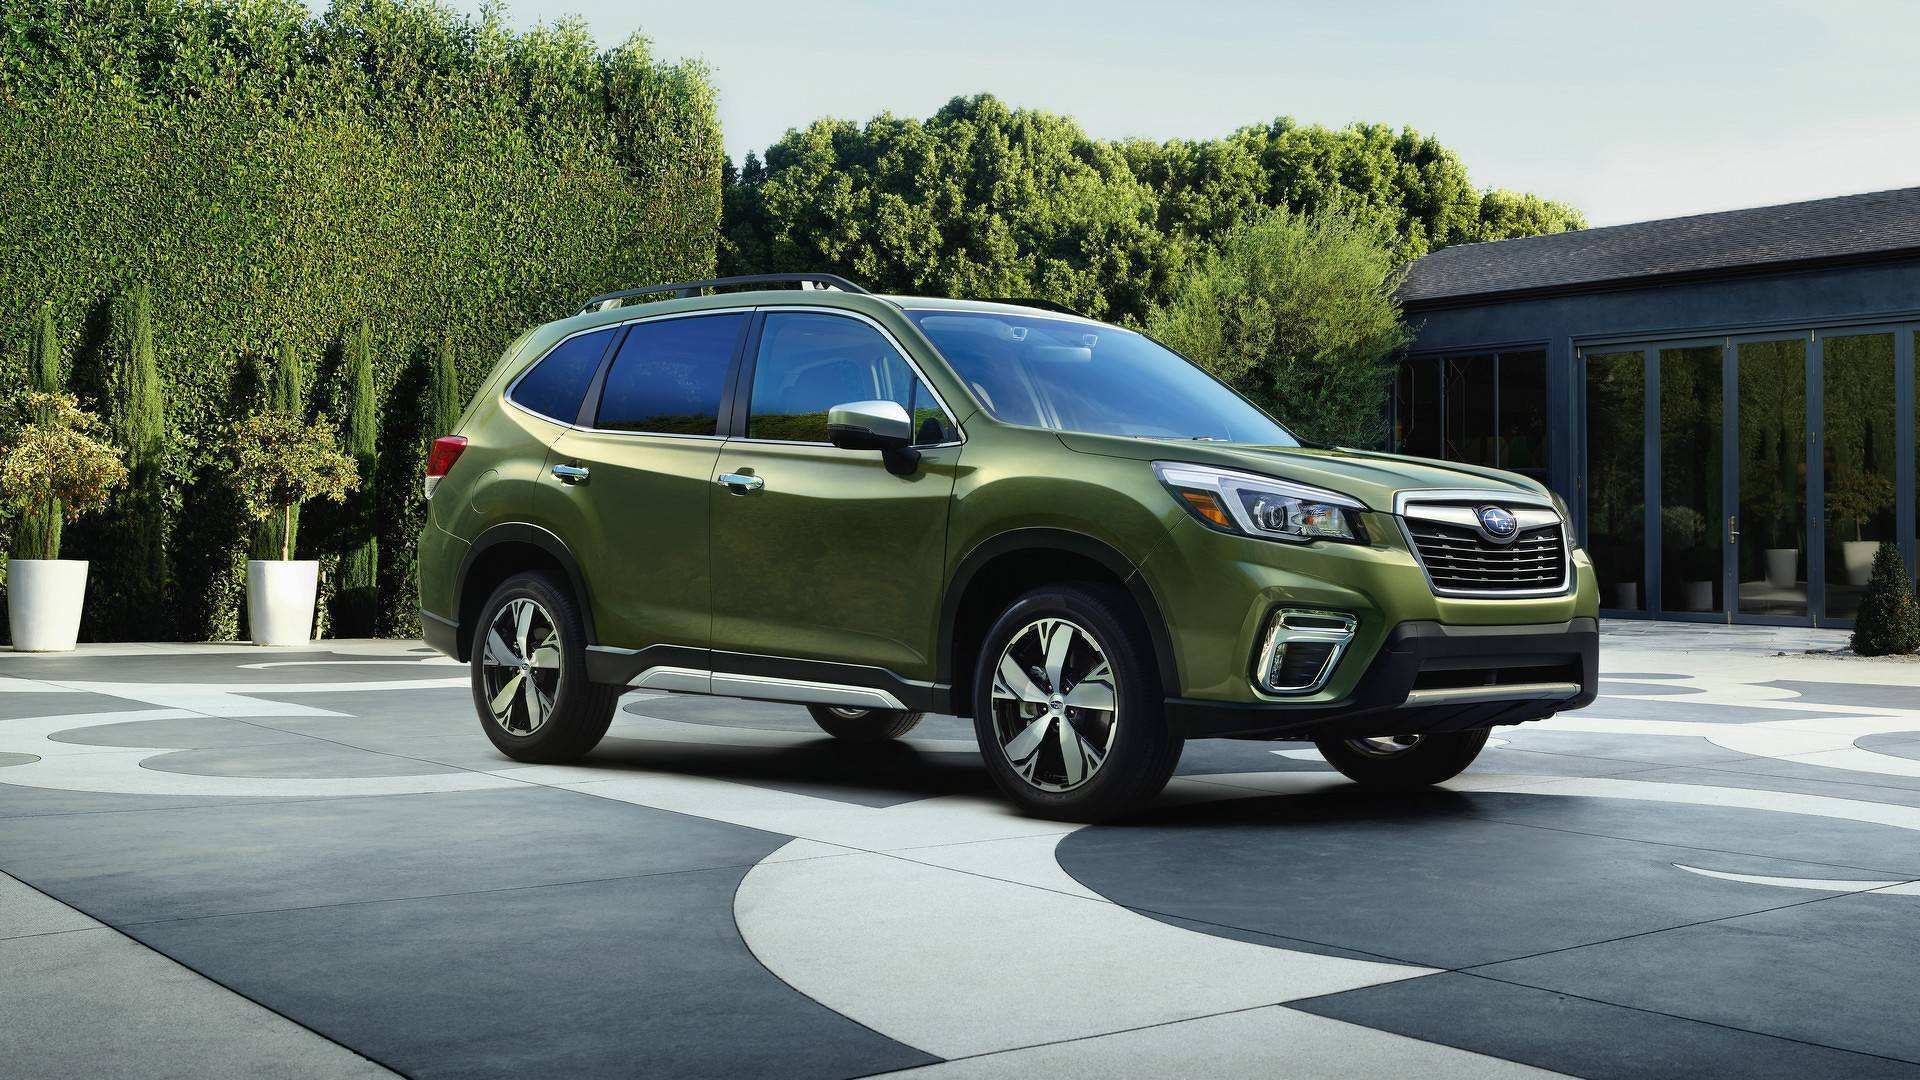 49 New 2019 Subaru Forester Mpg Concept with 2019 Subaru Forester Mpg